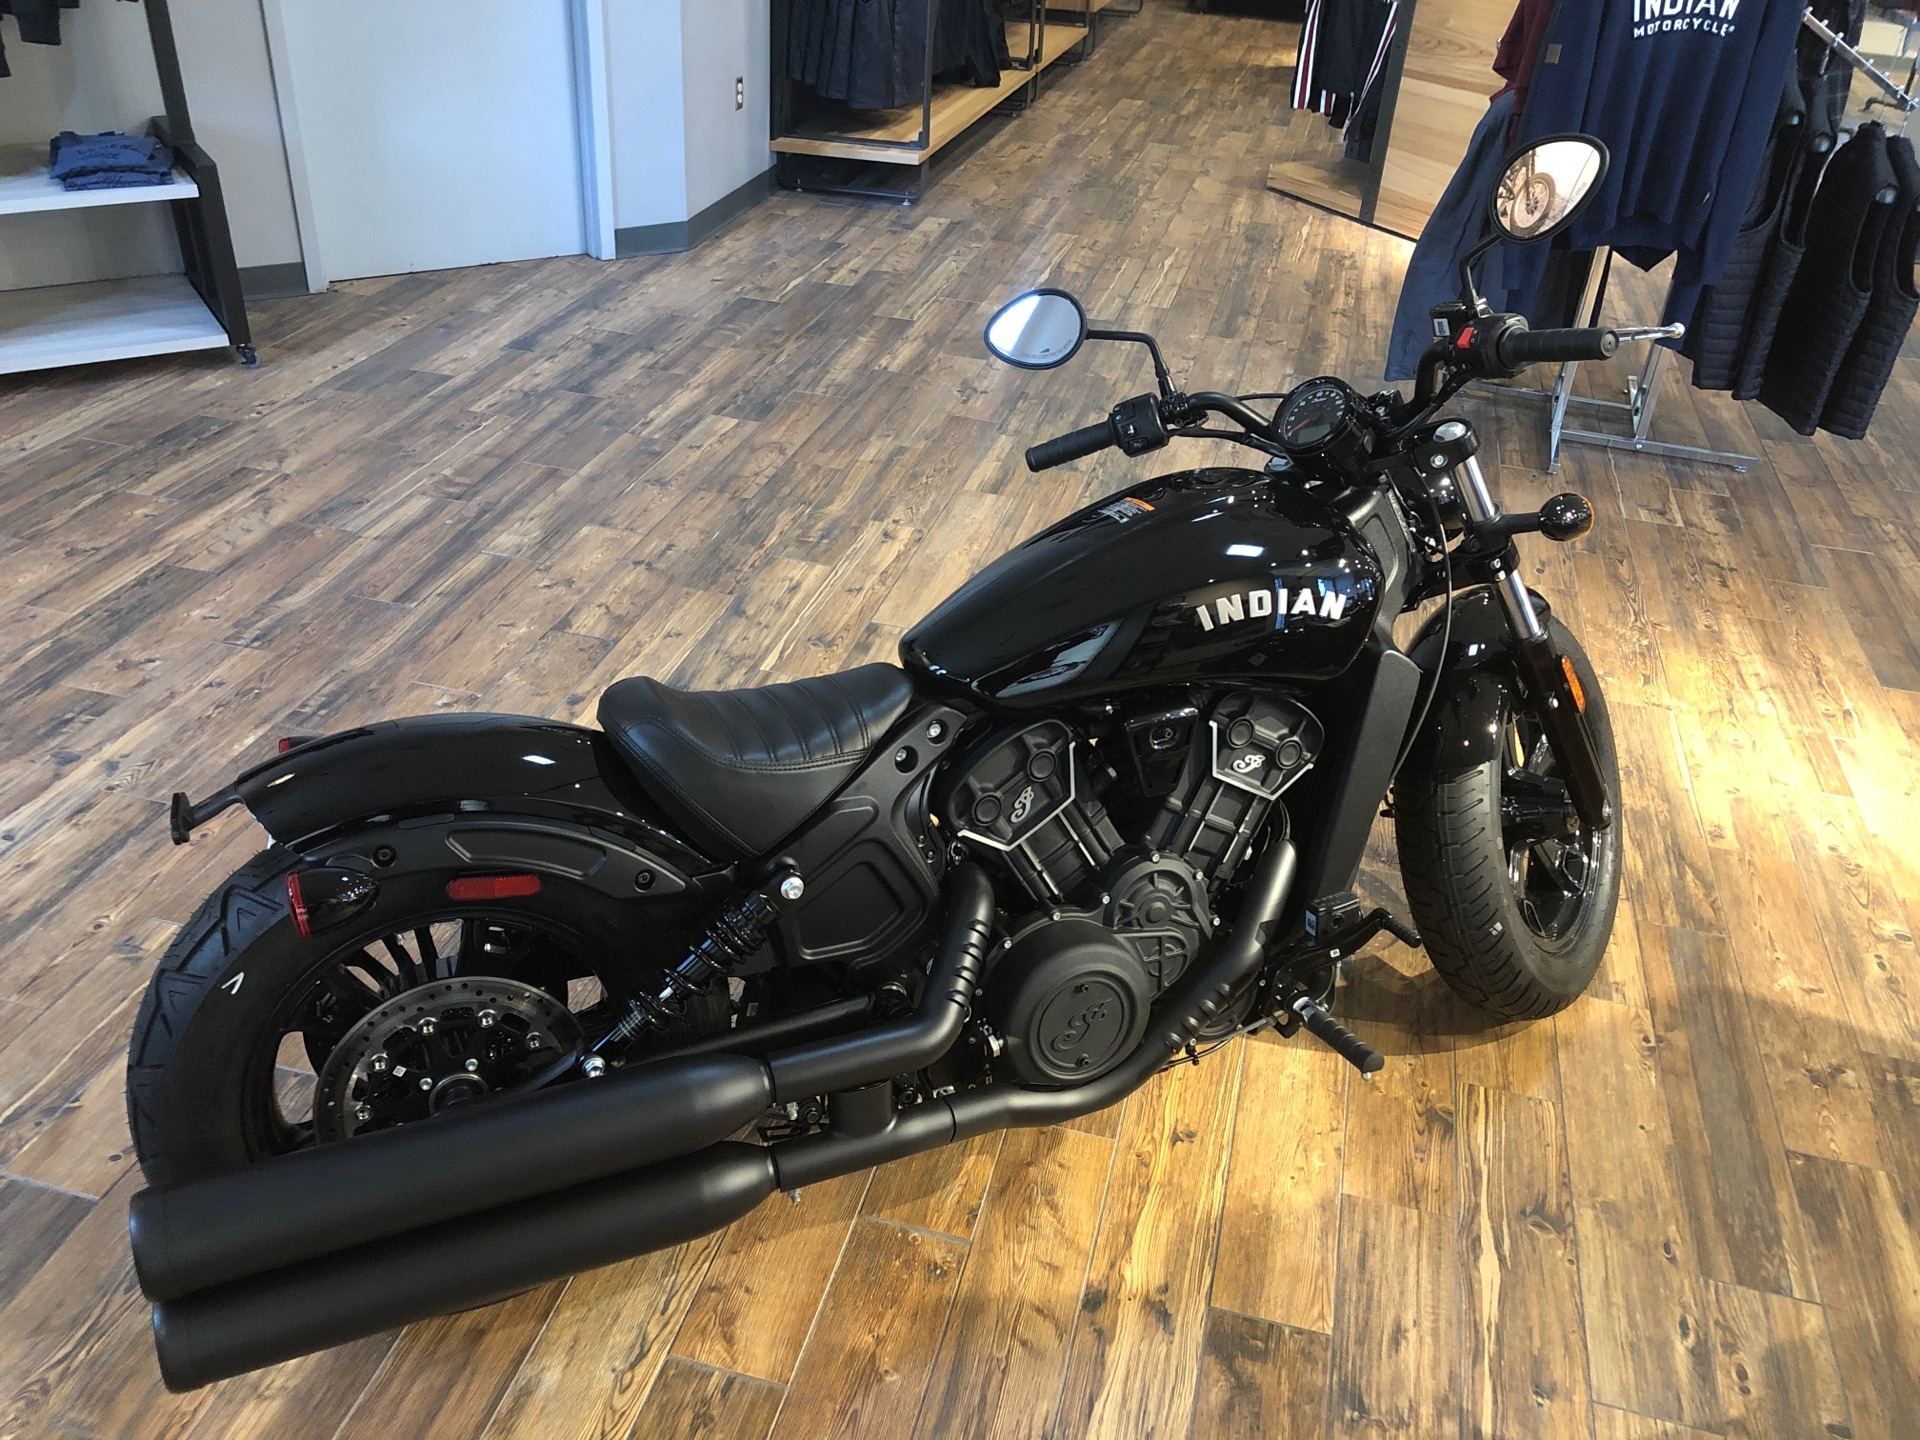 New 2021 Indian Scout Bobber Sixty Motorcycles Savannah Motorsports In Savannah Ga Stock Number Ind166744